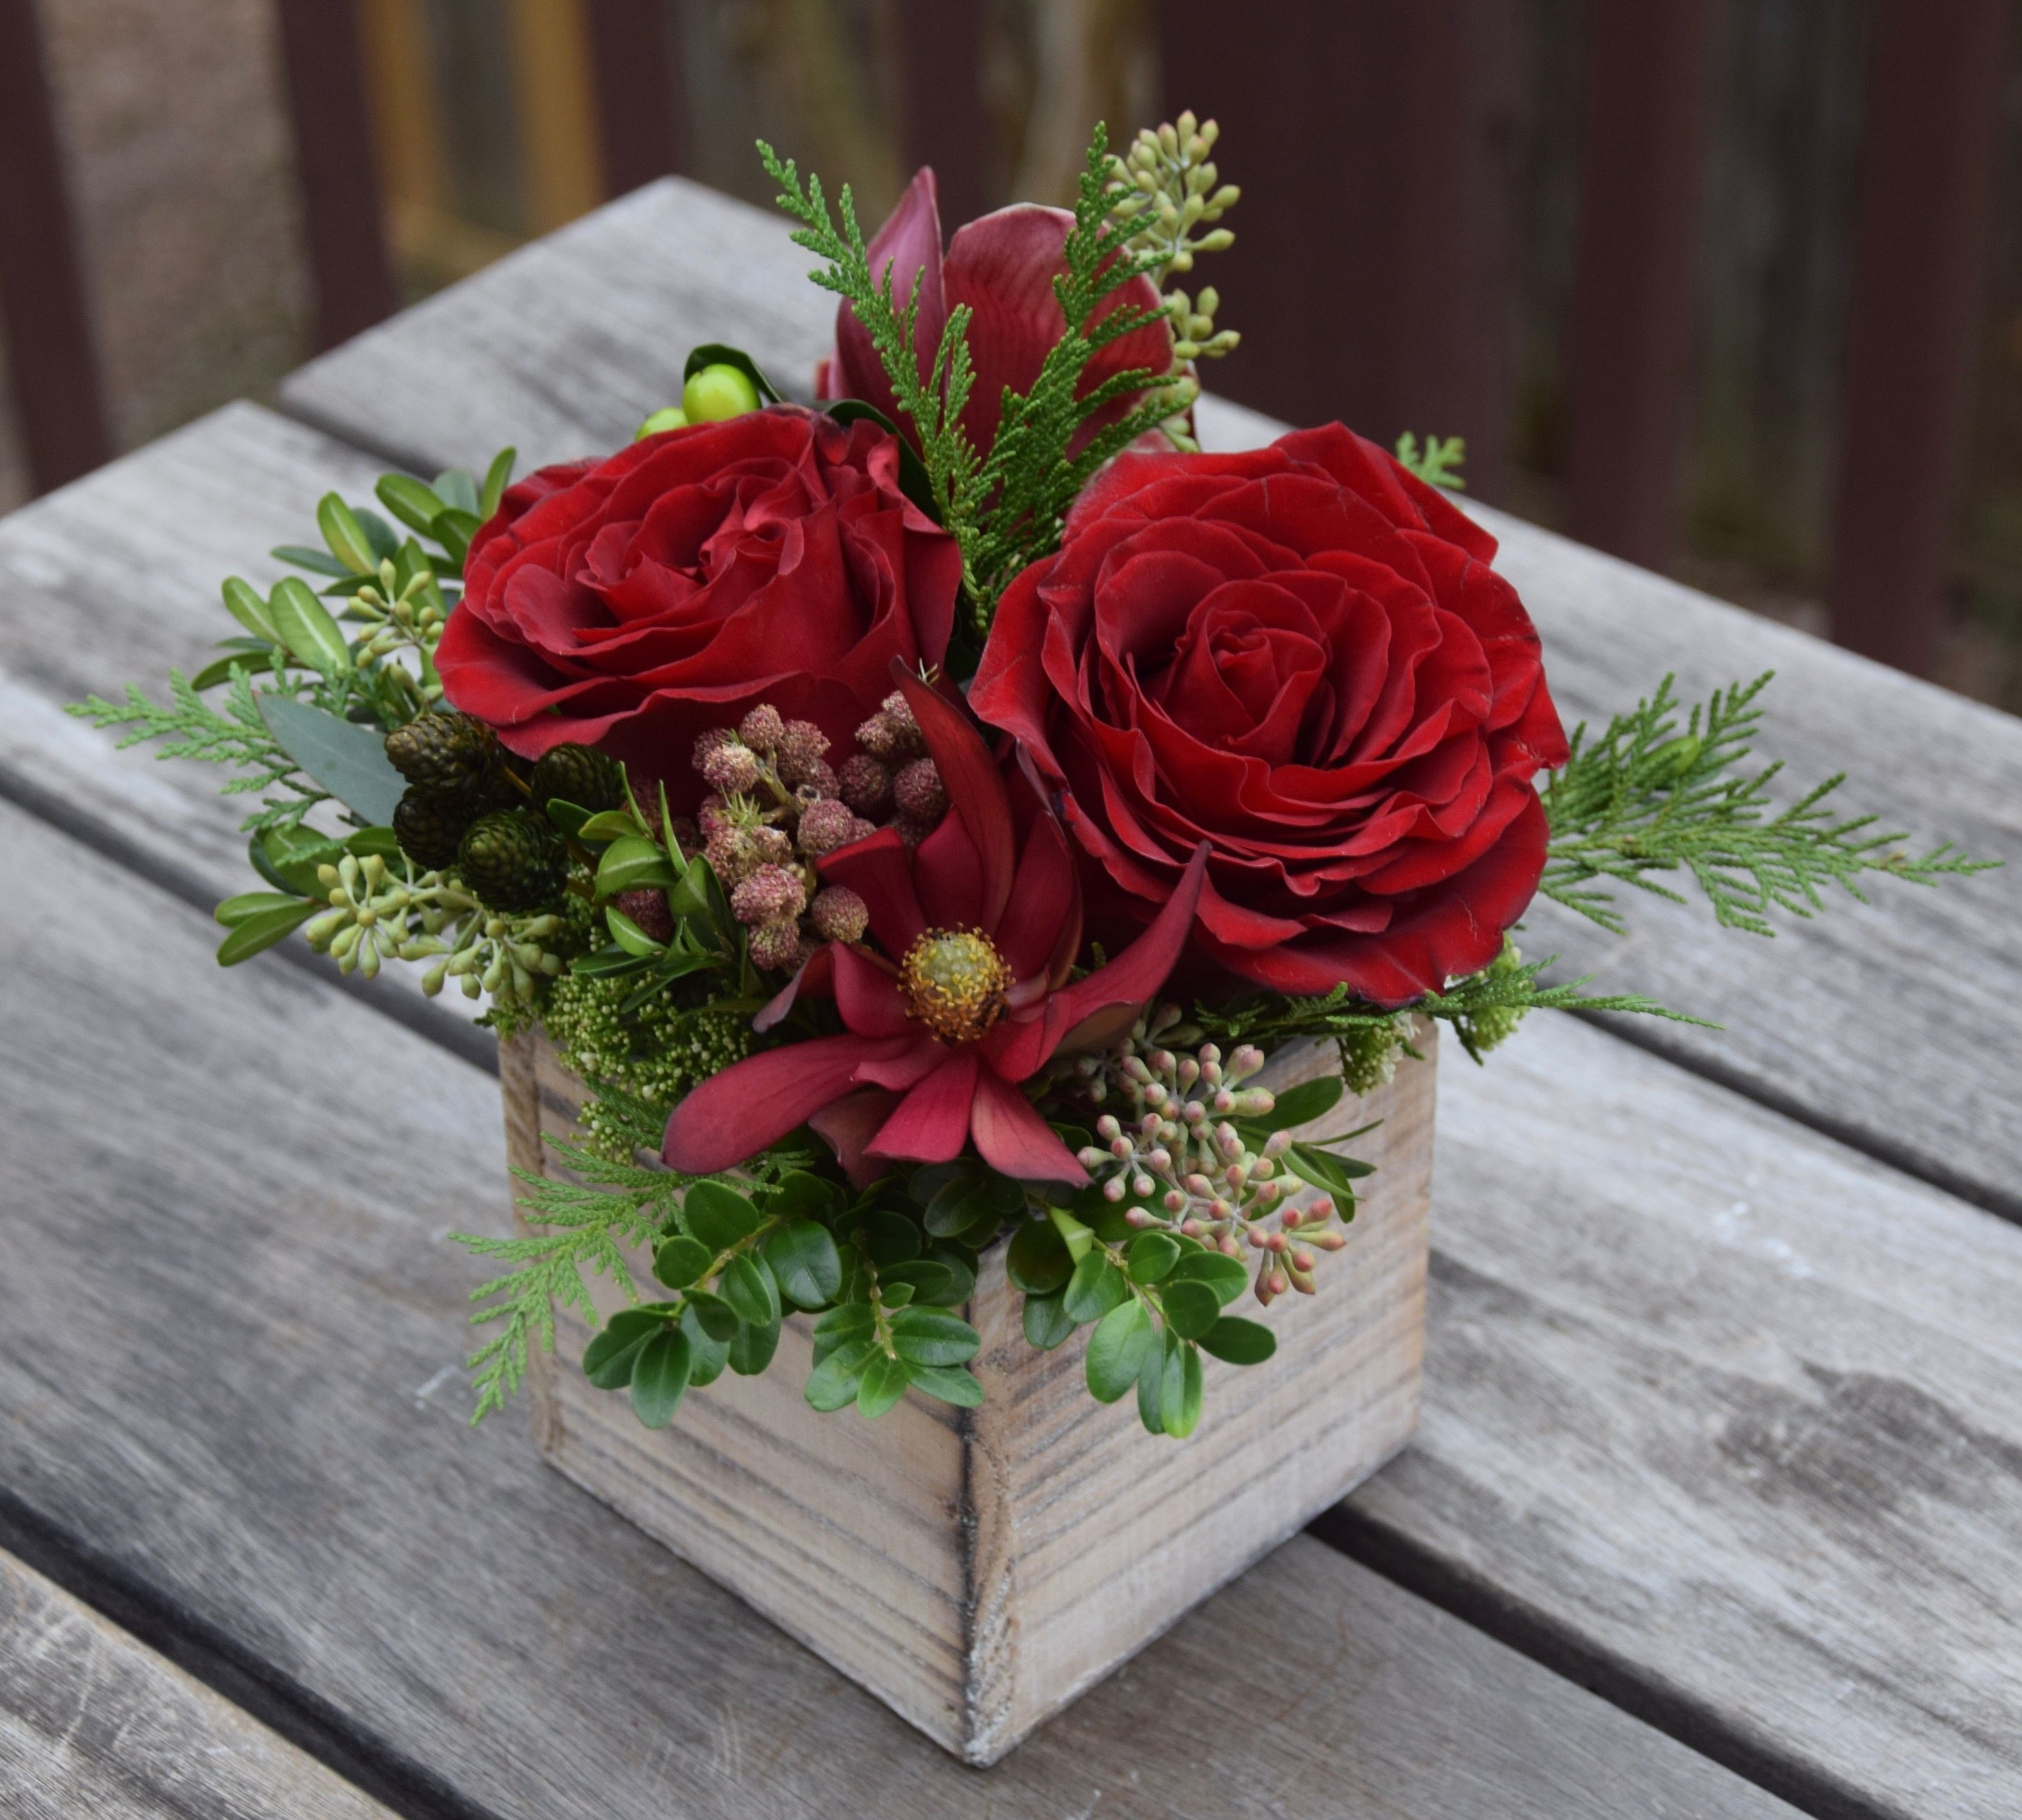 Petit holiday flower box. Fresh flowers arrangements